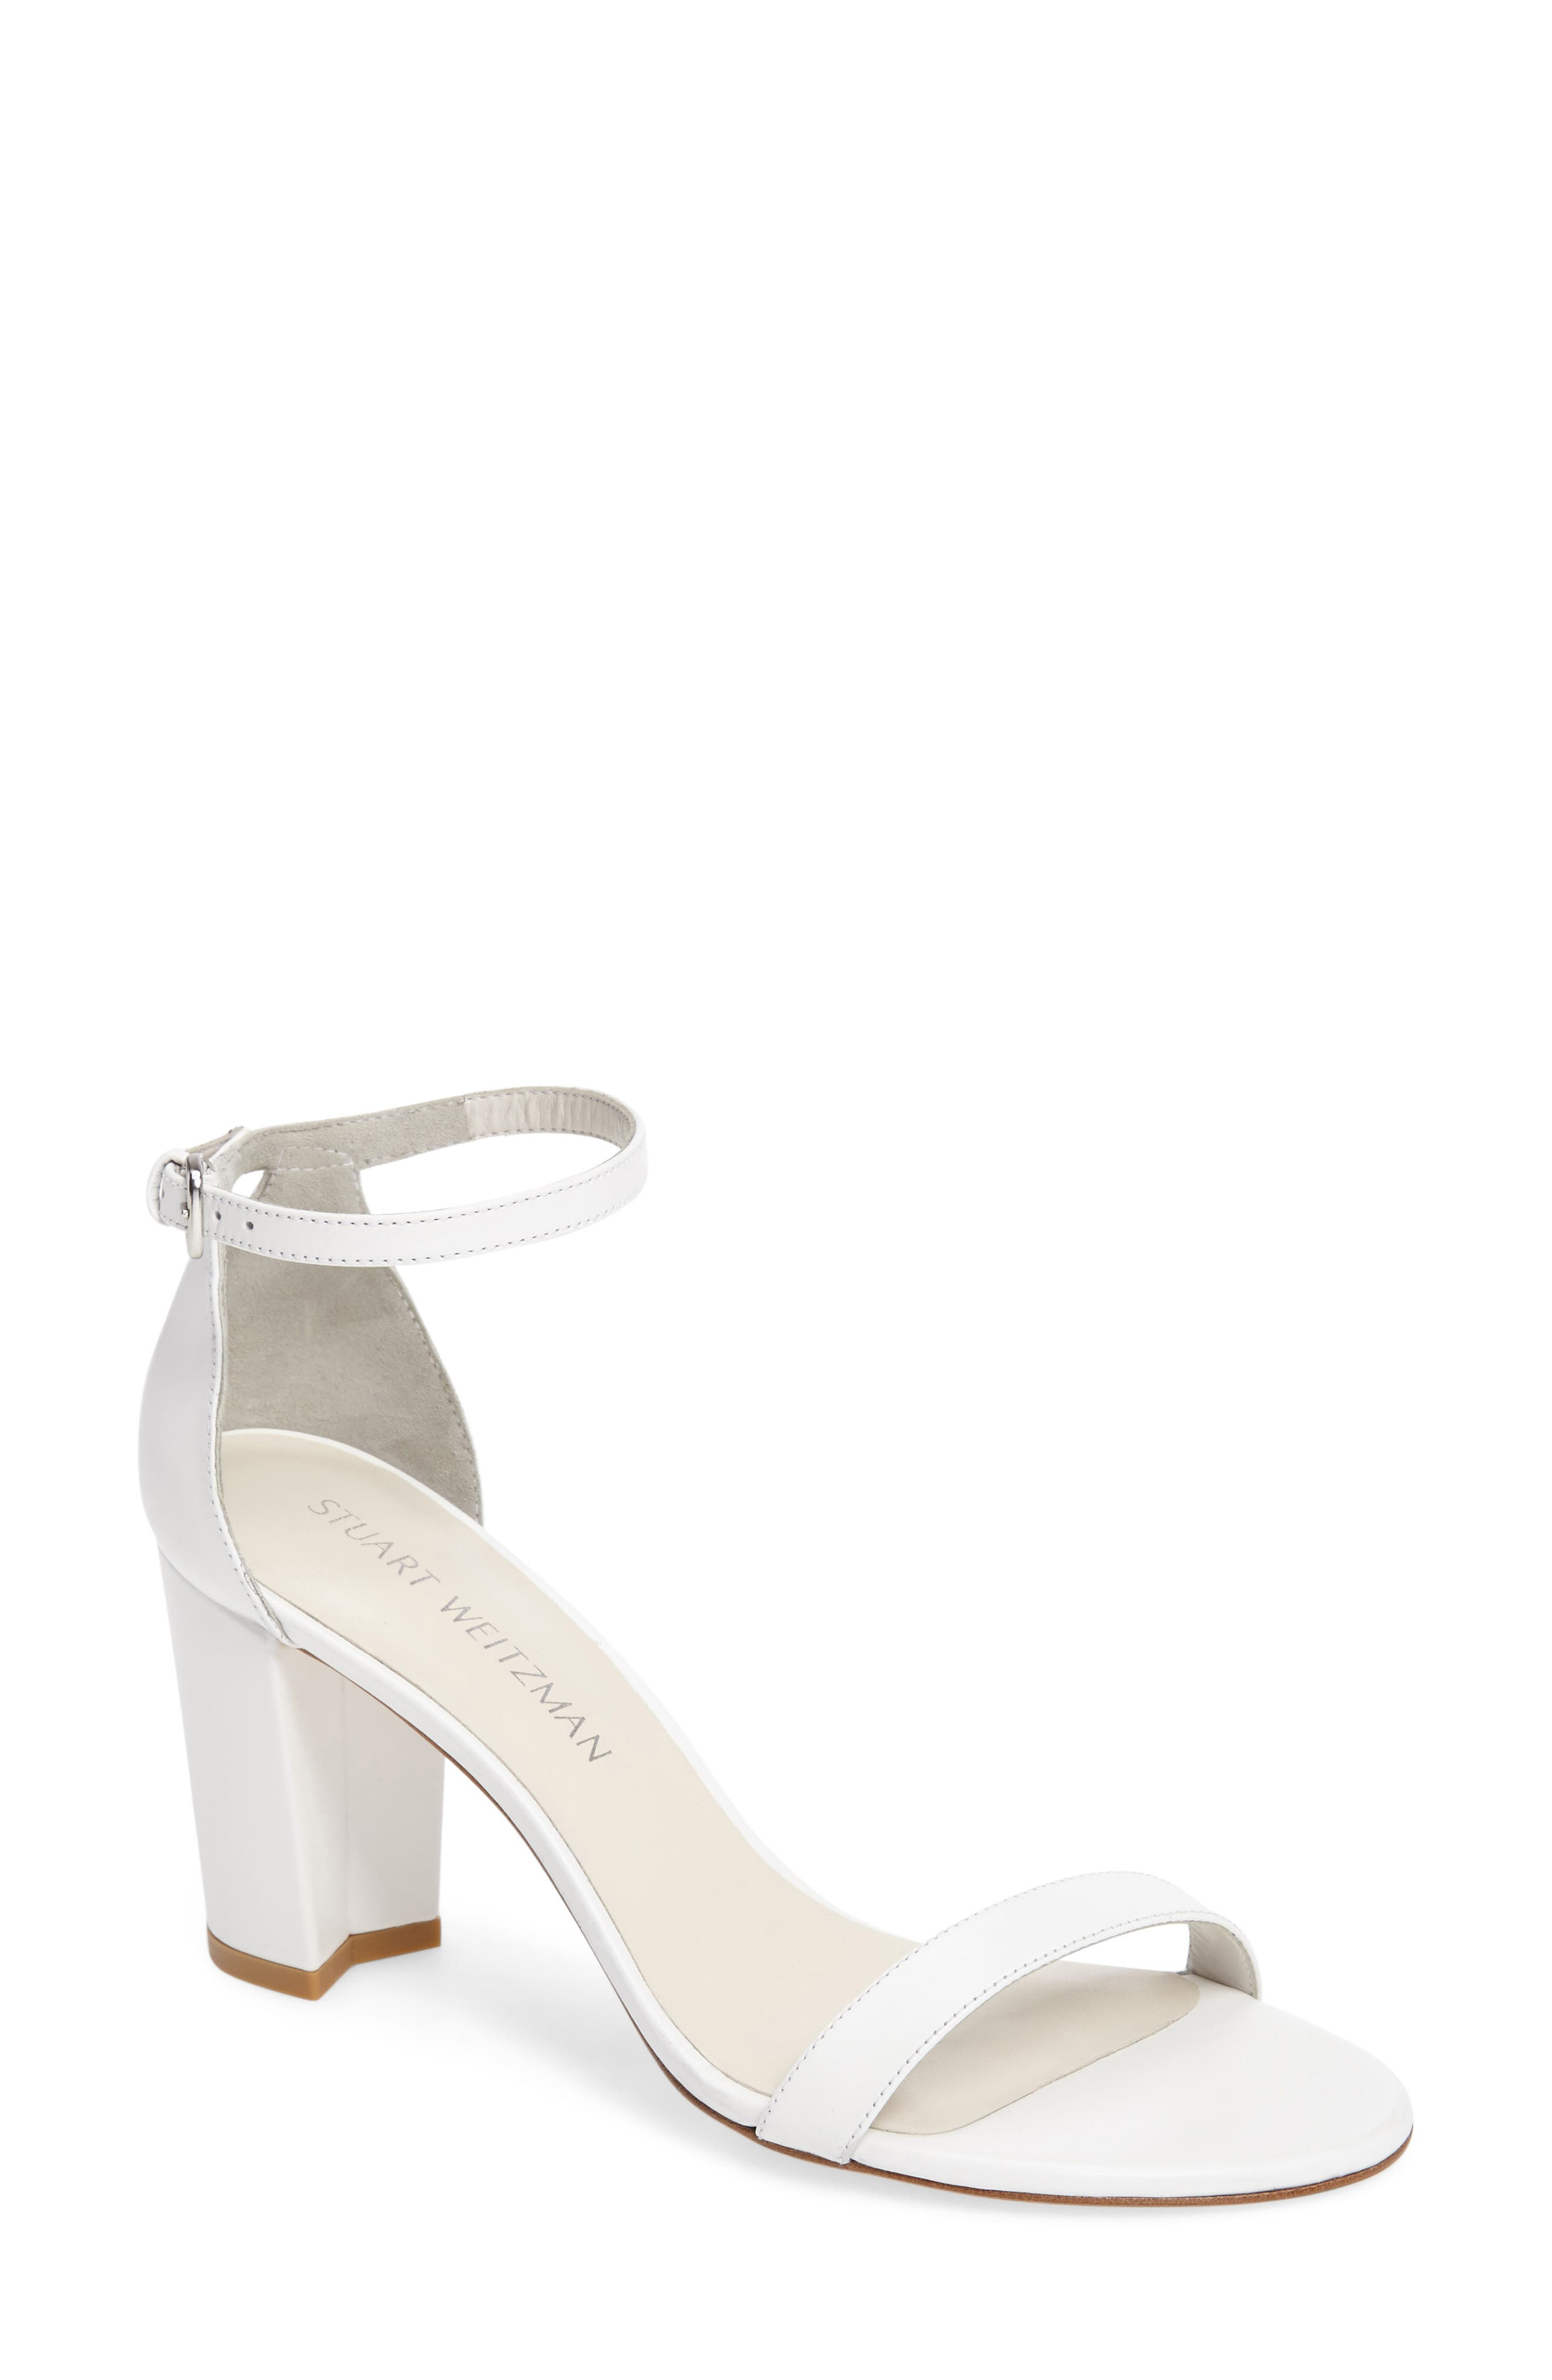 NearlyNude Ankle Strap Sandal,                             Main thumbnail 15, color,